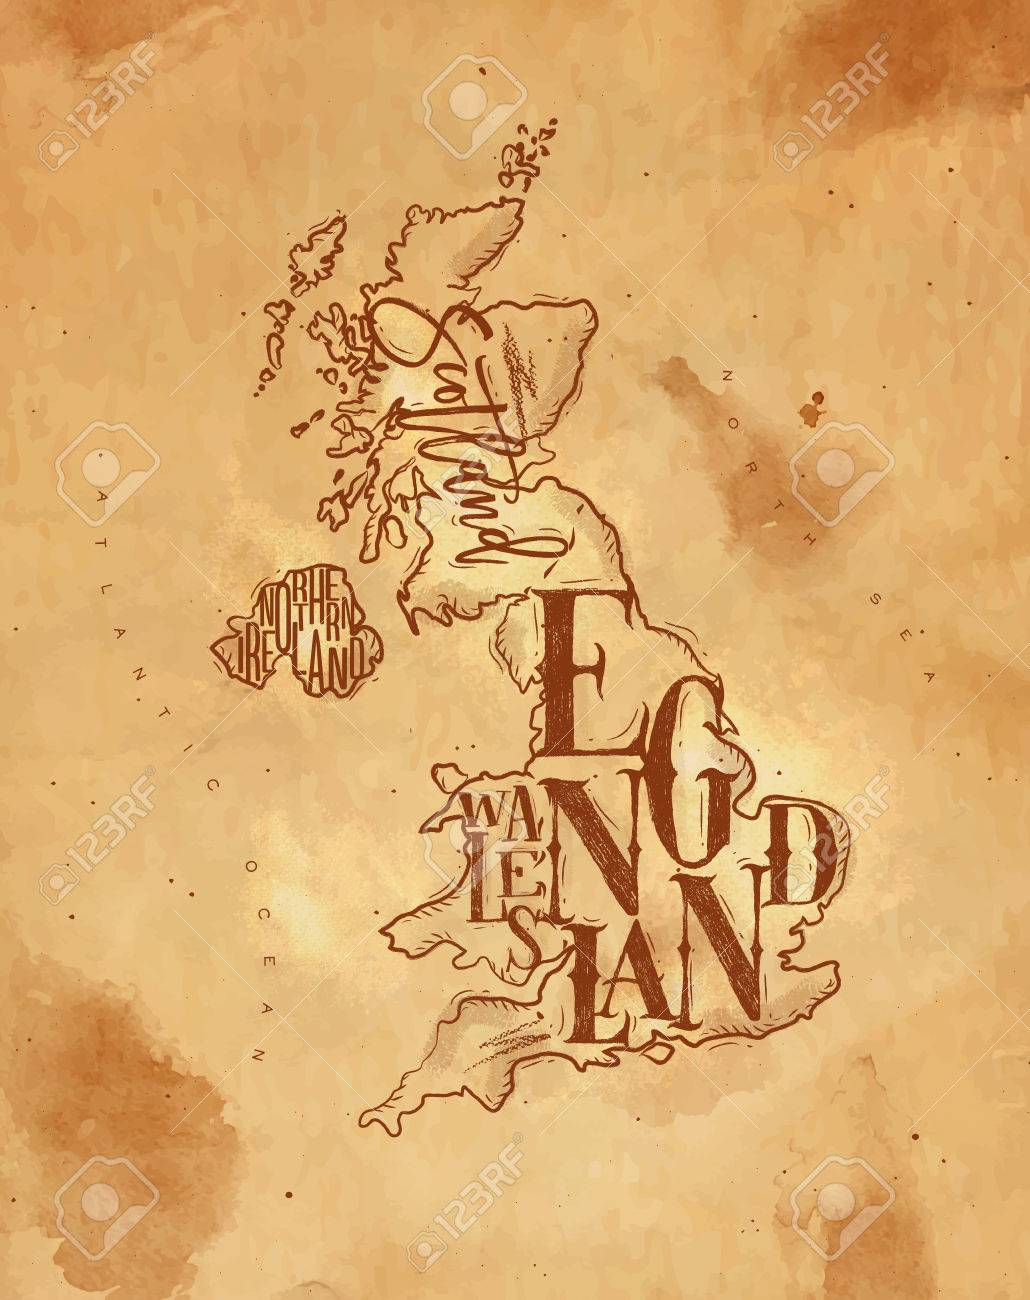 Map Of Ireland And Wales.Vintage United Kingdom Map With Regions Inscription Scotland